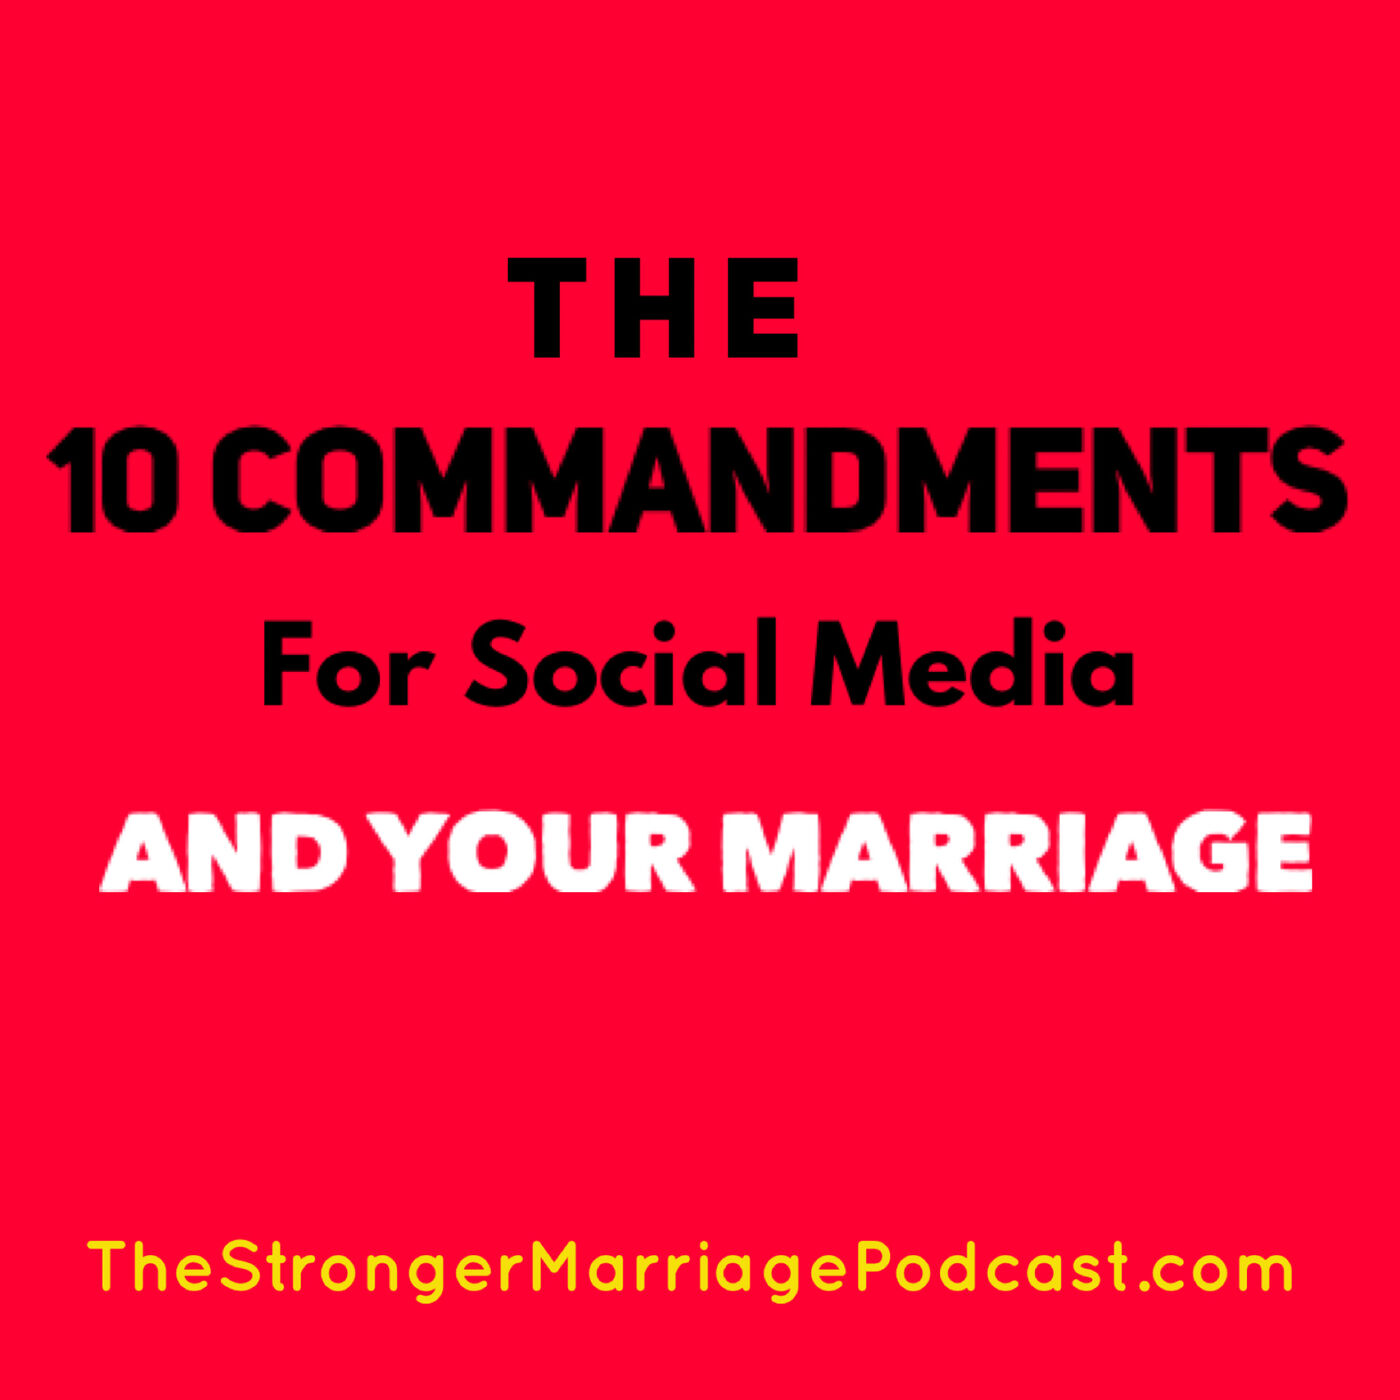 10 Commandments for Social Media and your MARRIAGE